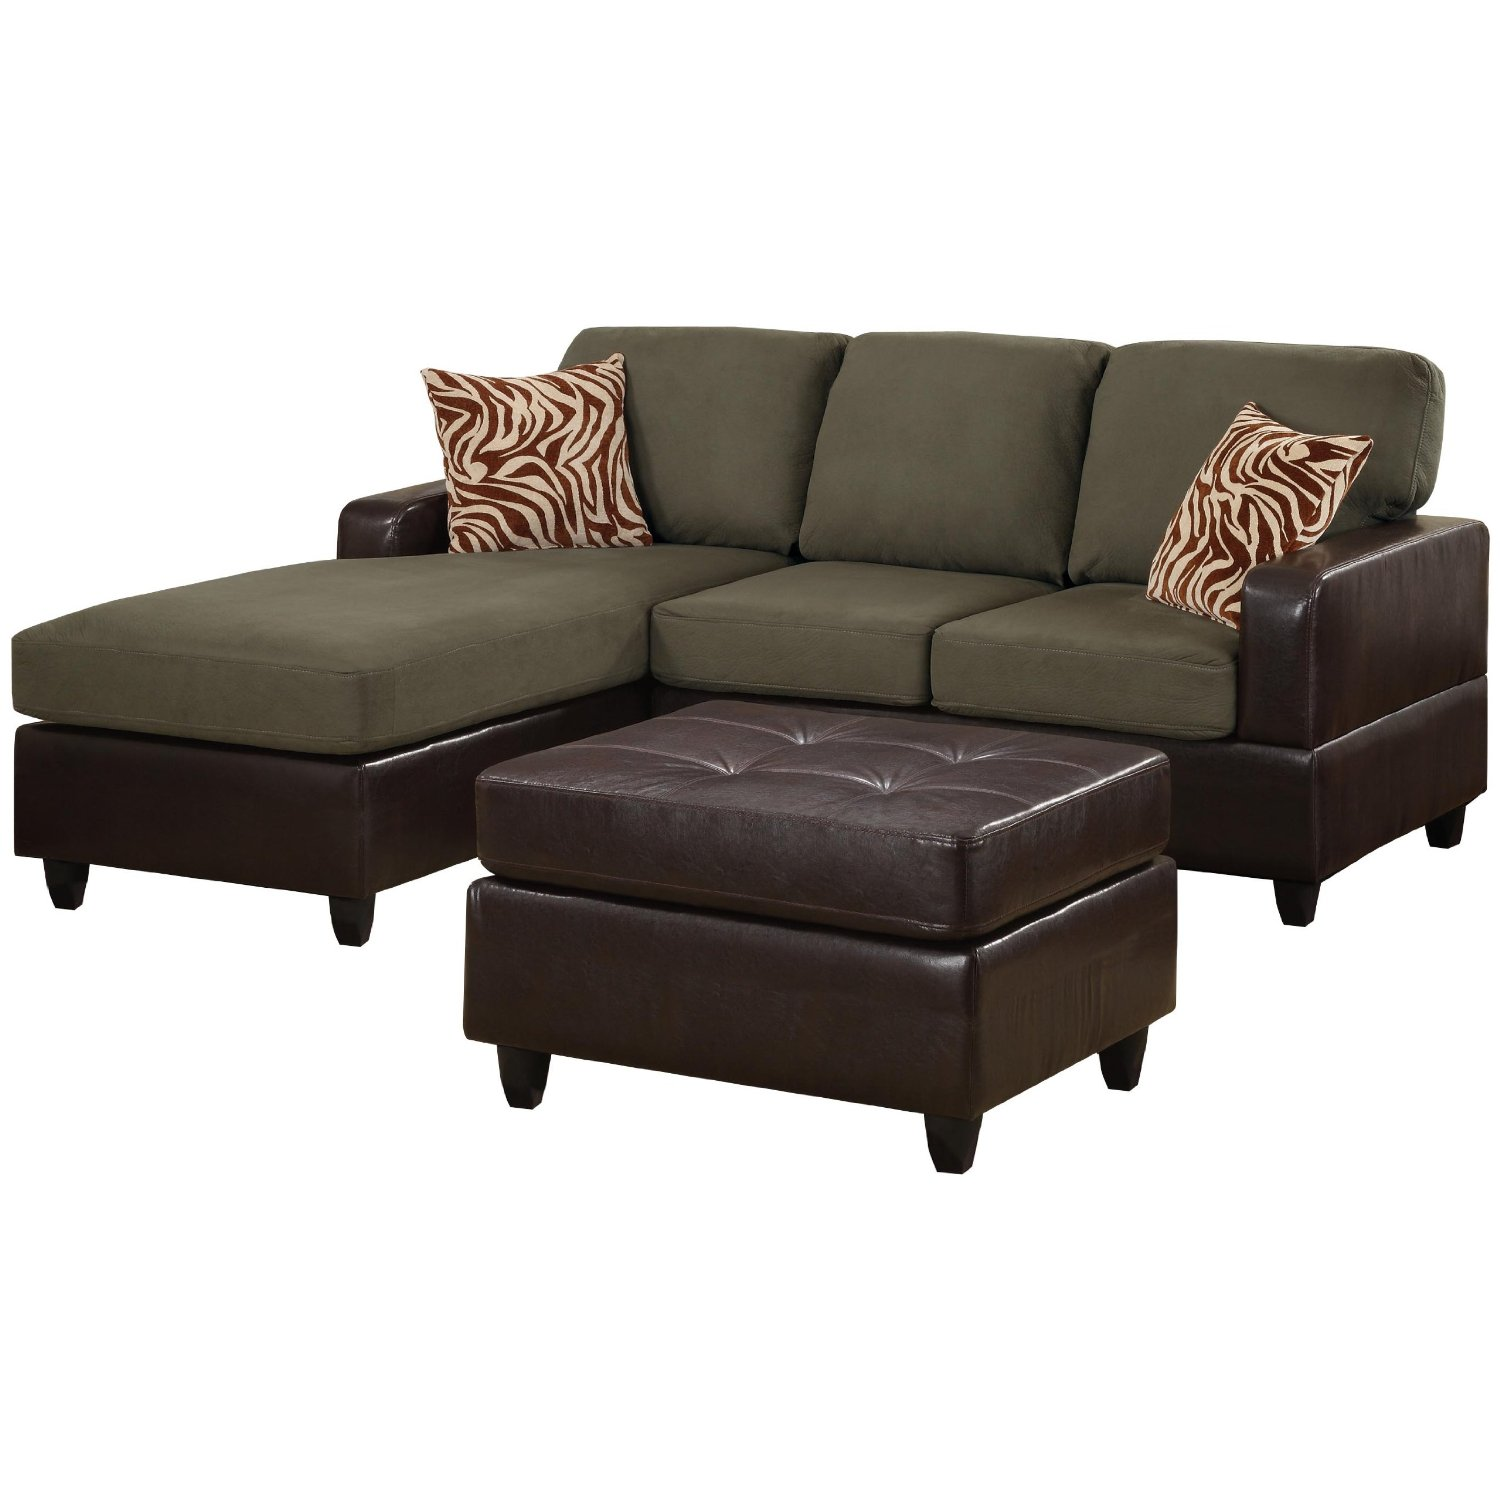 Sectional sofas for small spaces for Sectional couch